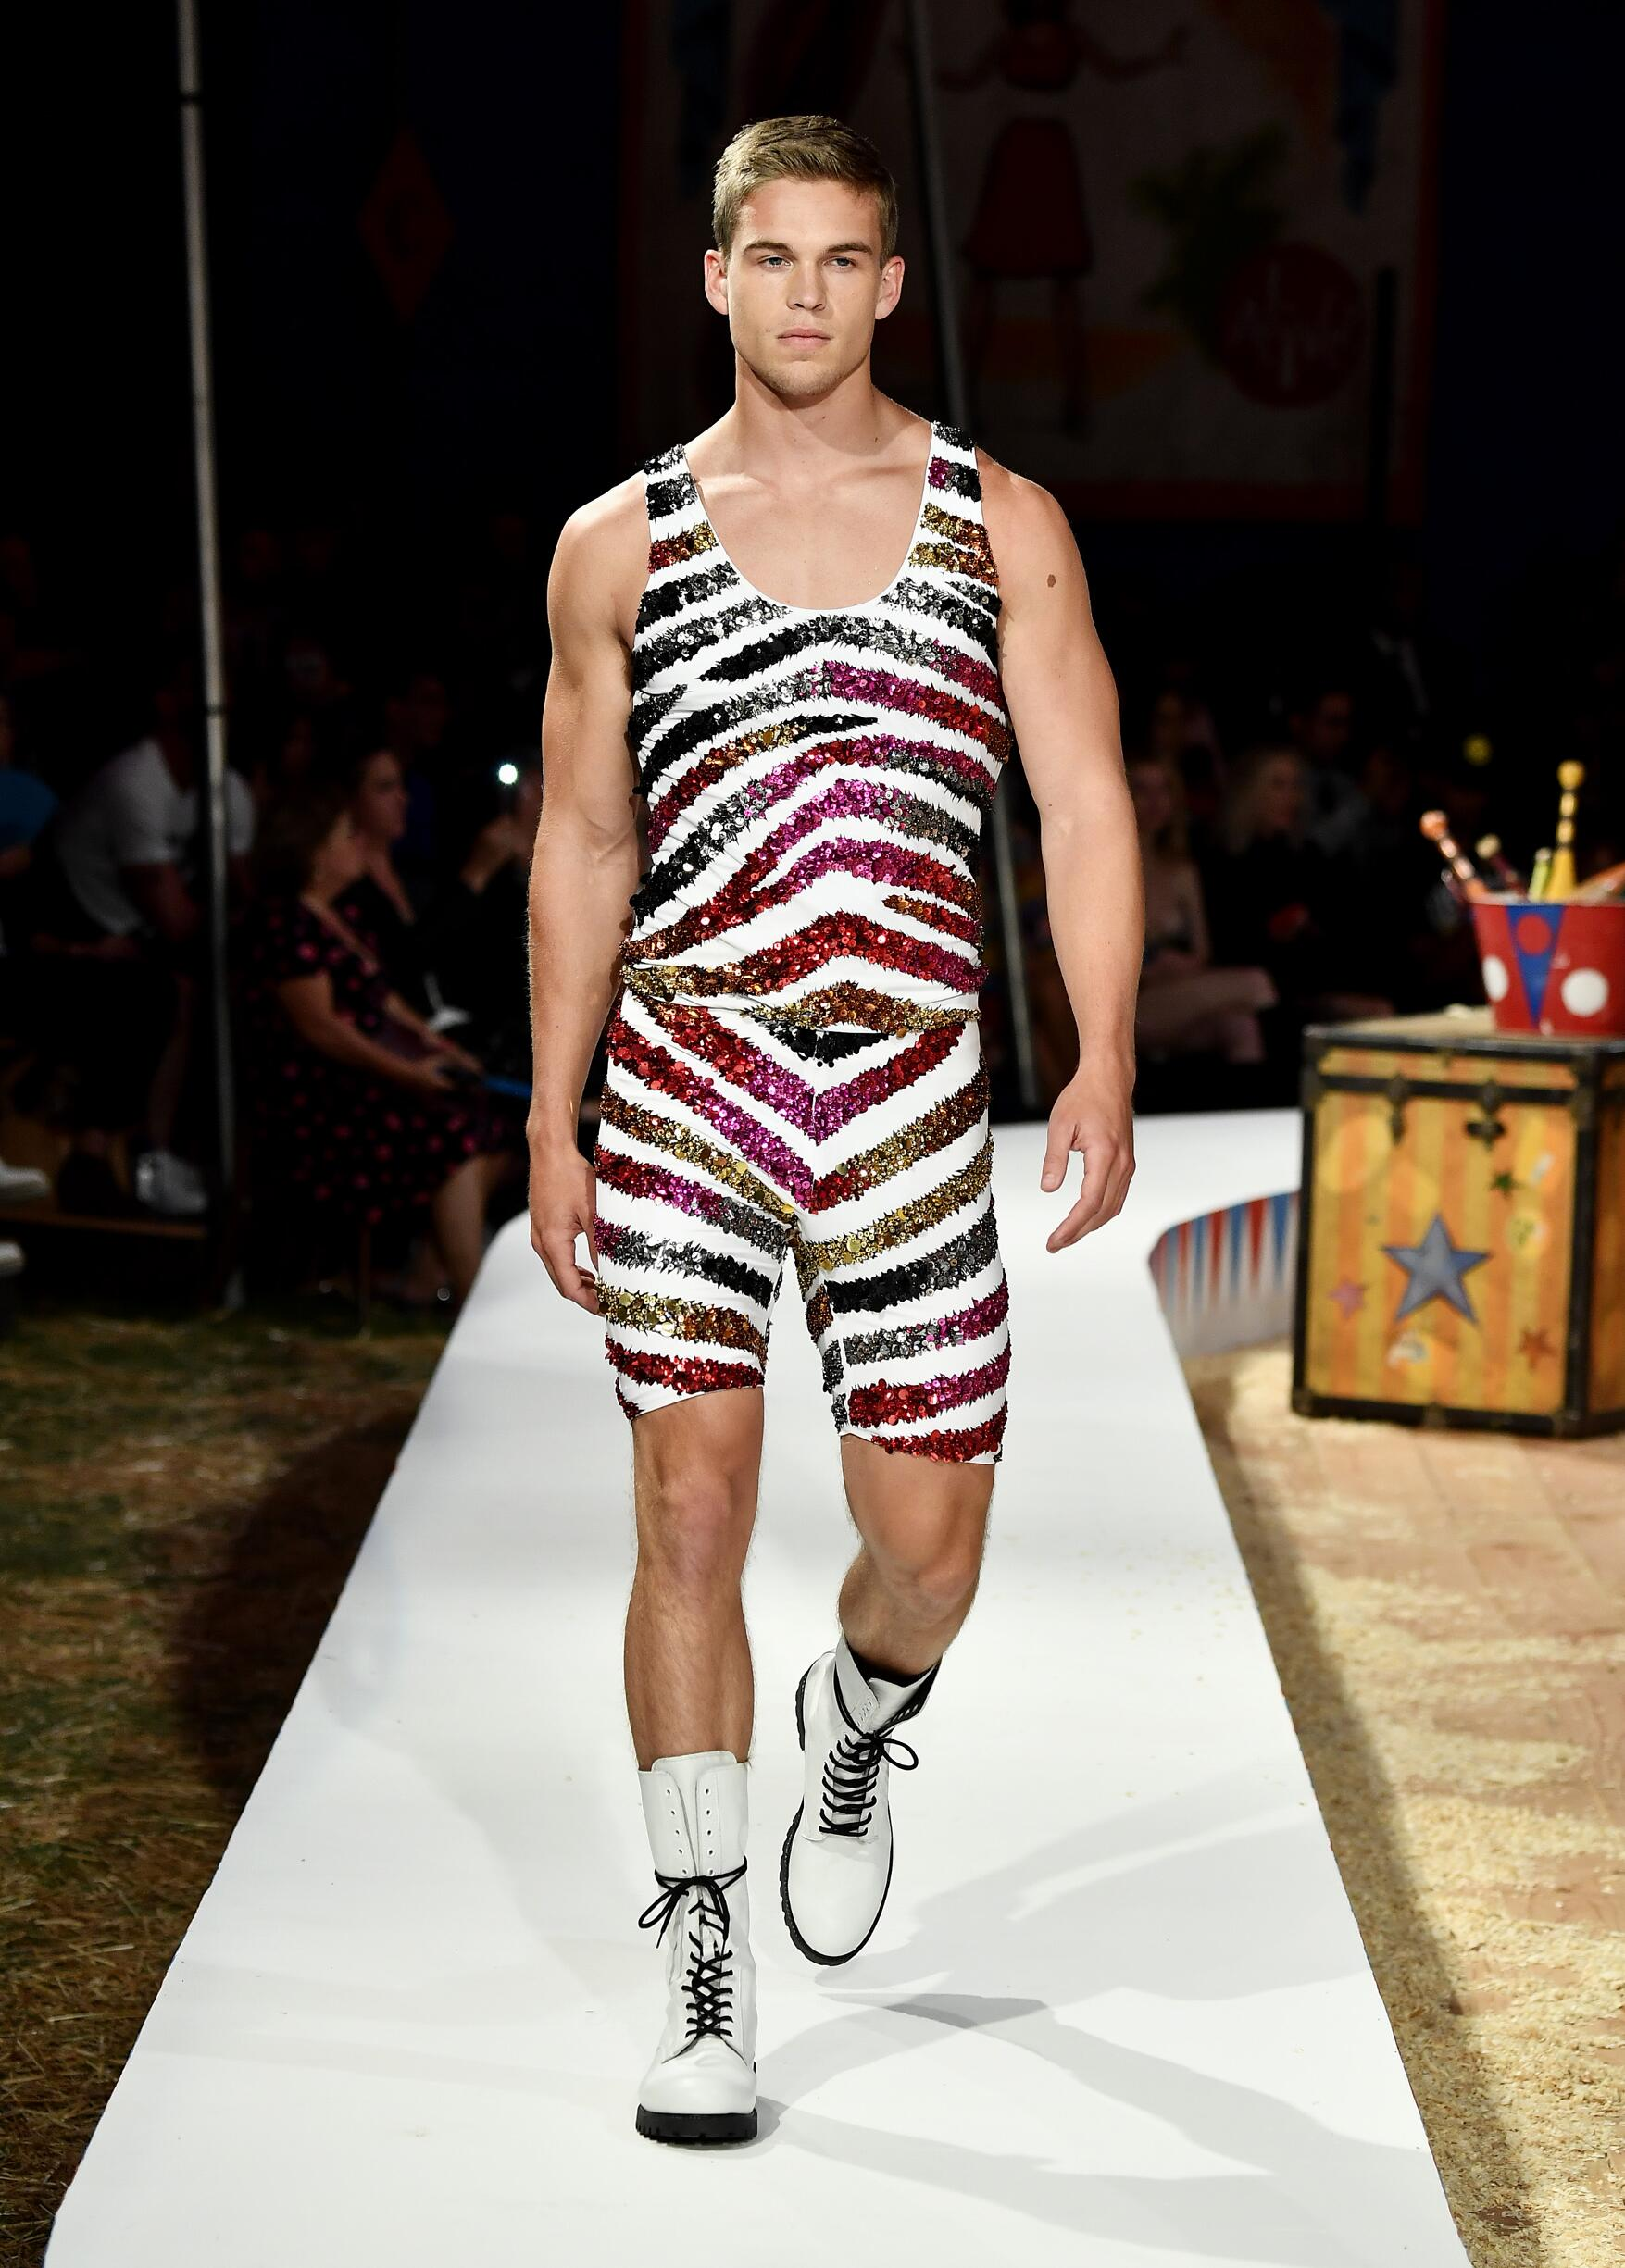 Moschino Spring Summer 2019 Menswear and Women's Resort Collection Look 41 Los Angeles